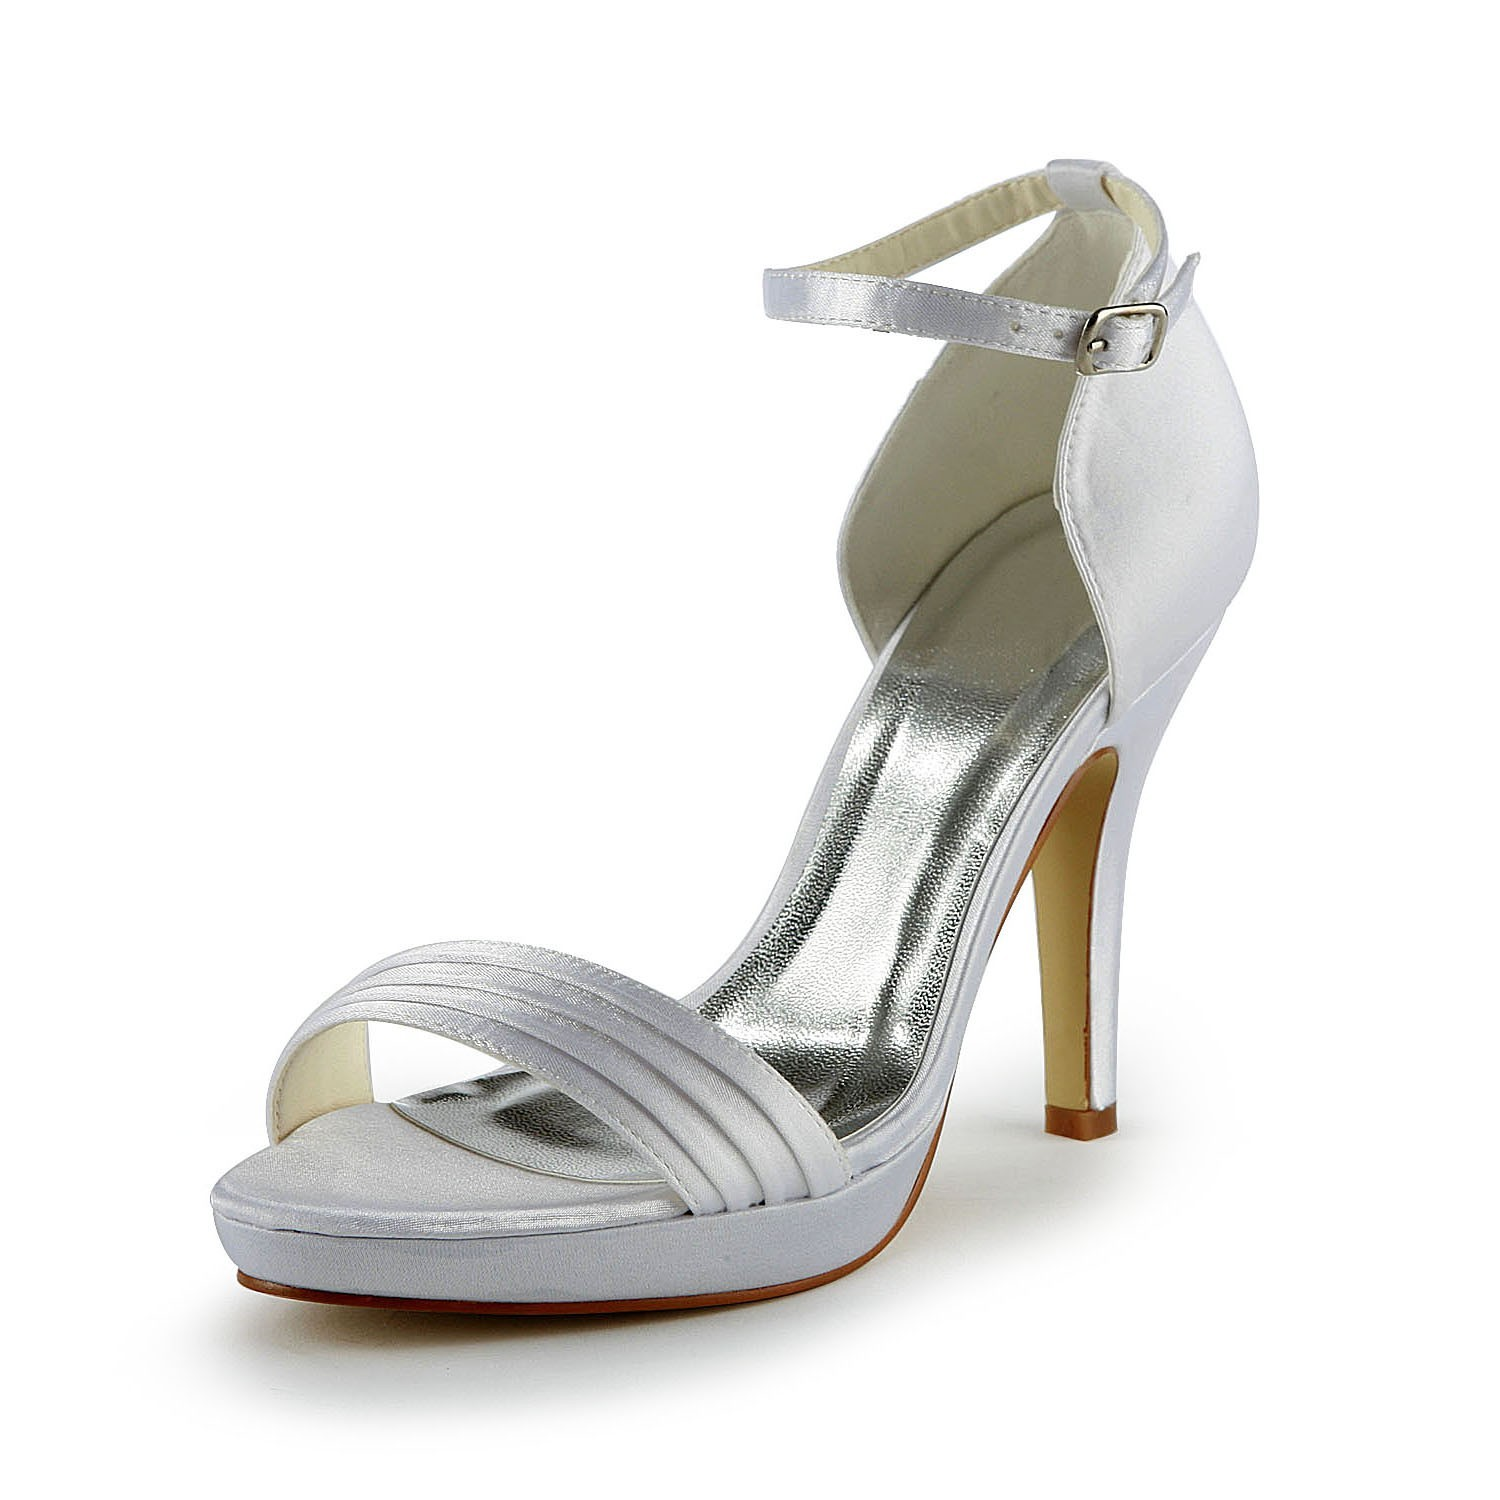 88ec1a4d47c5 The Most Fashionable Women s Pretty Satin Stiletto Heel Sandals With Buckle  White Wedding Shoes